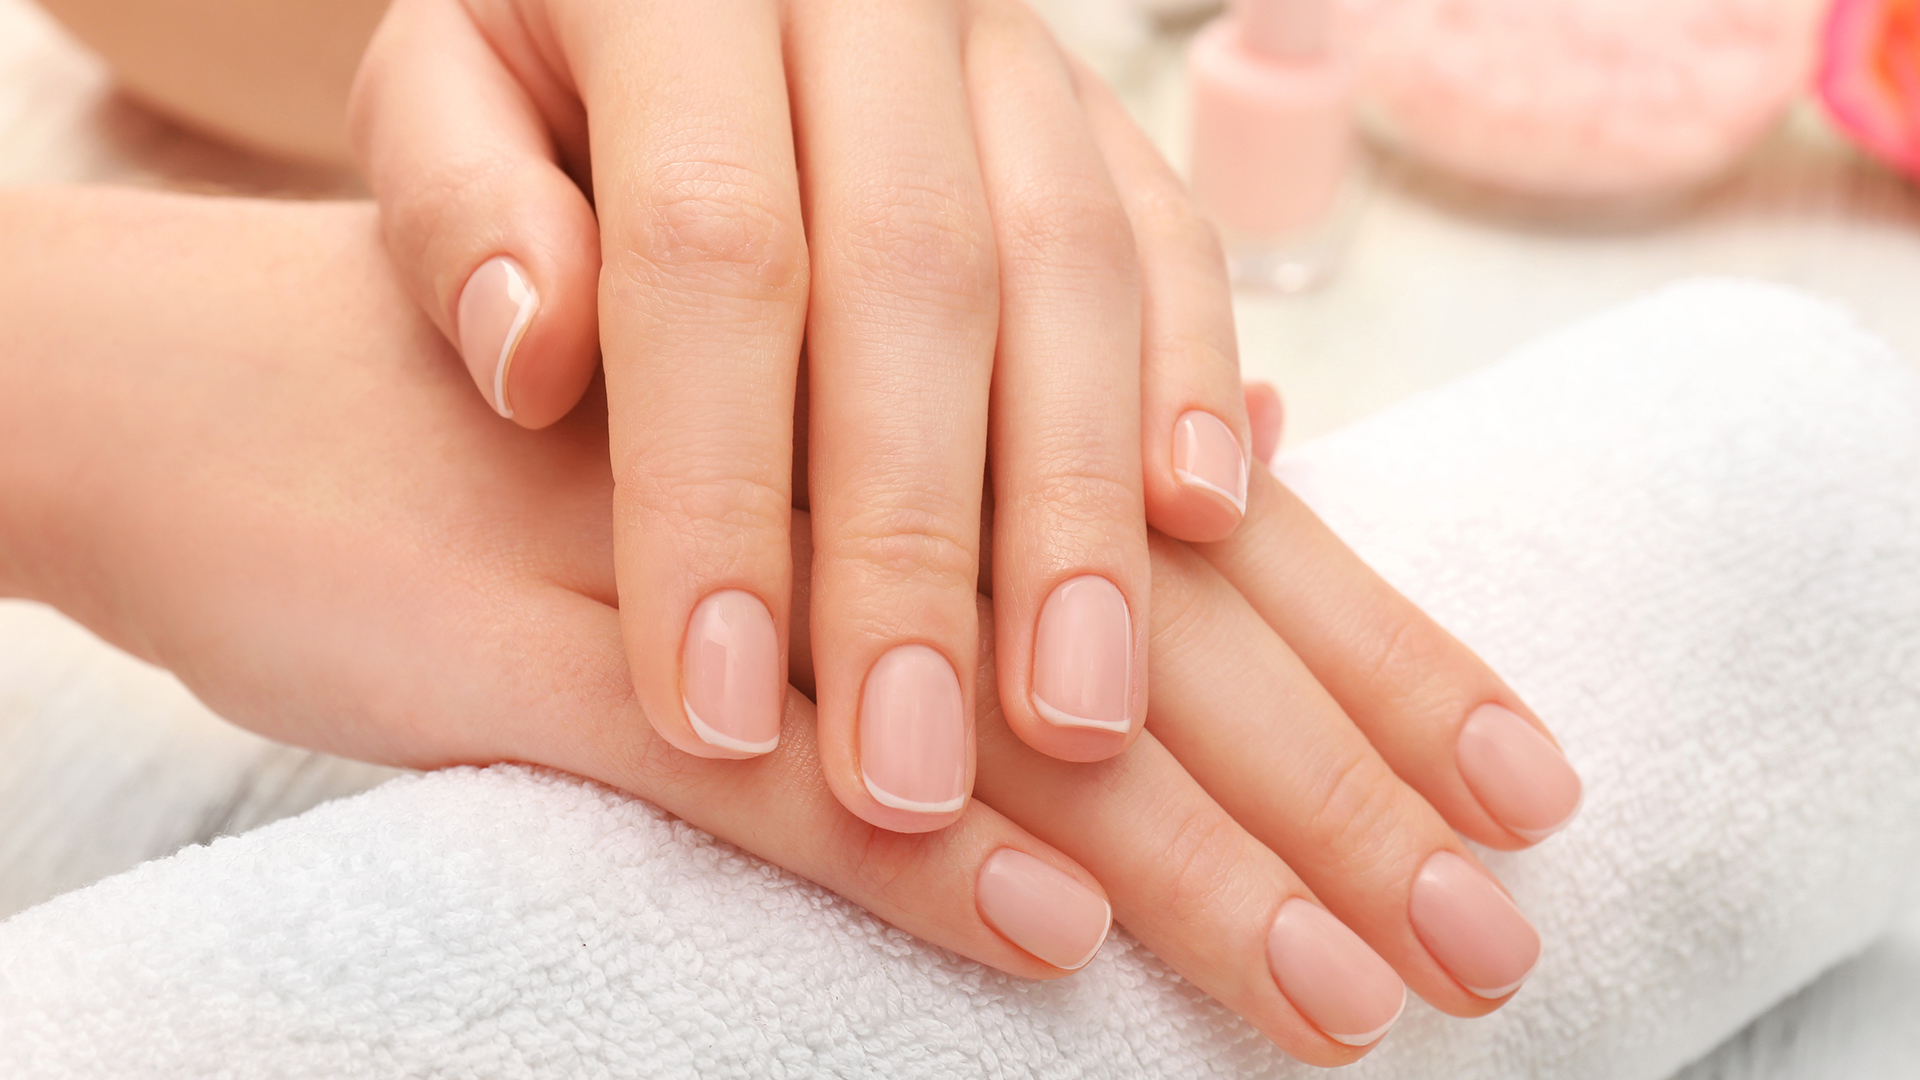 Tips To Make Nails Beautiful, Strong And Shiny